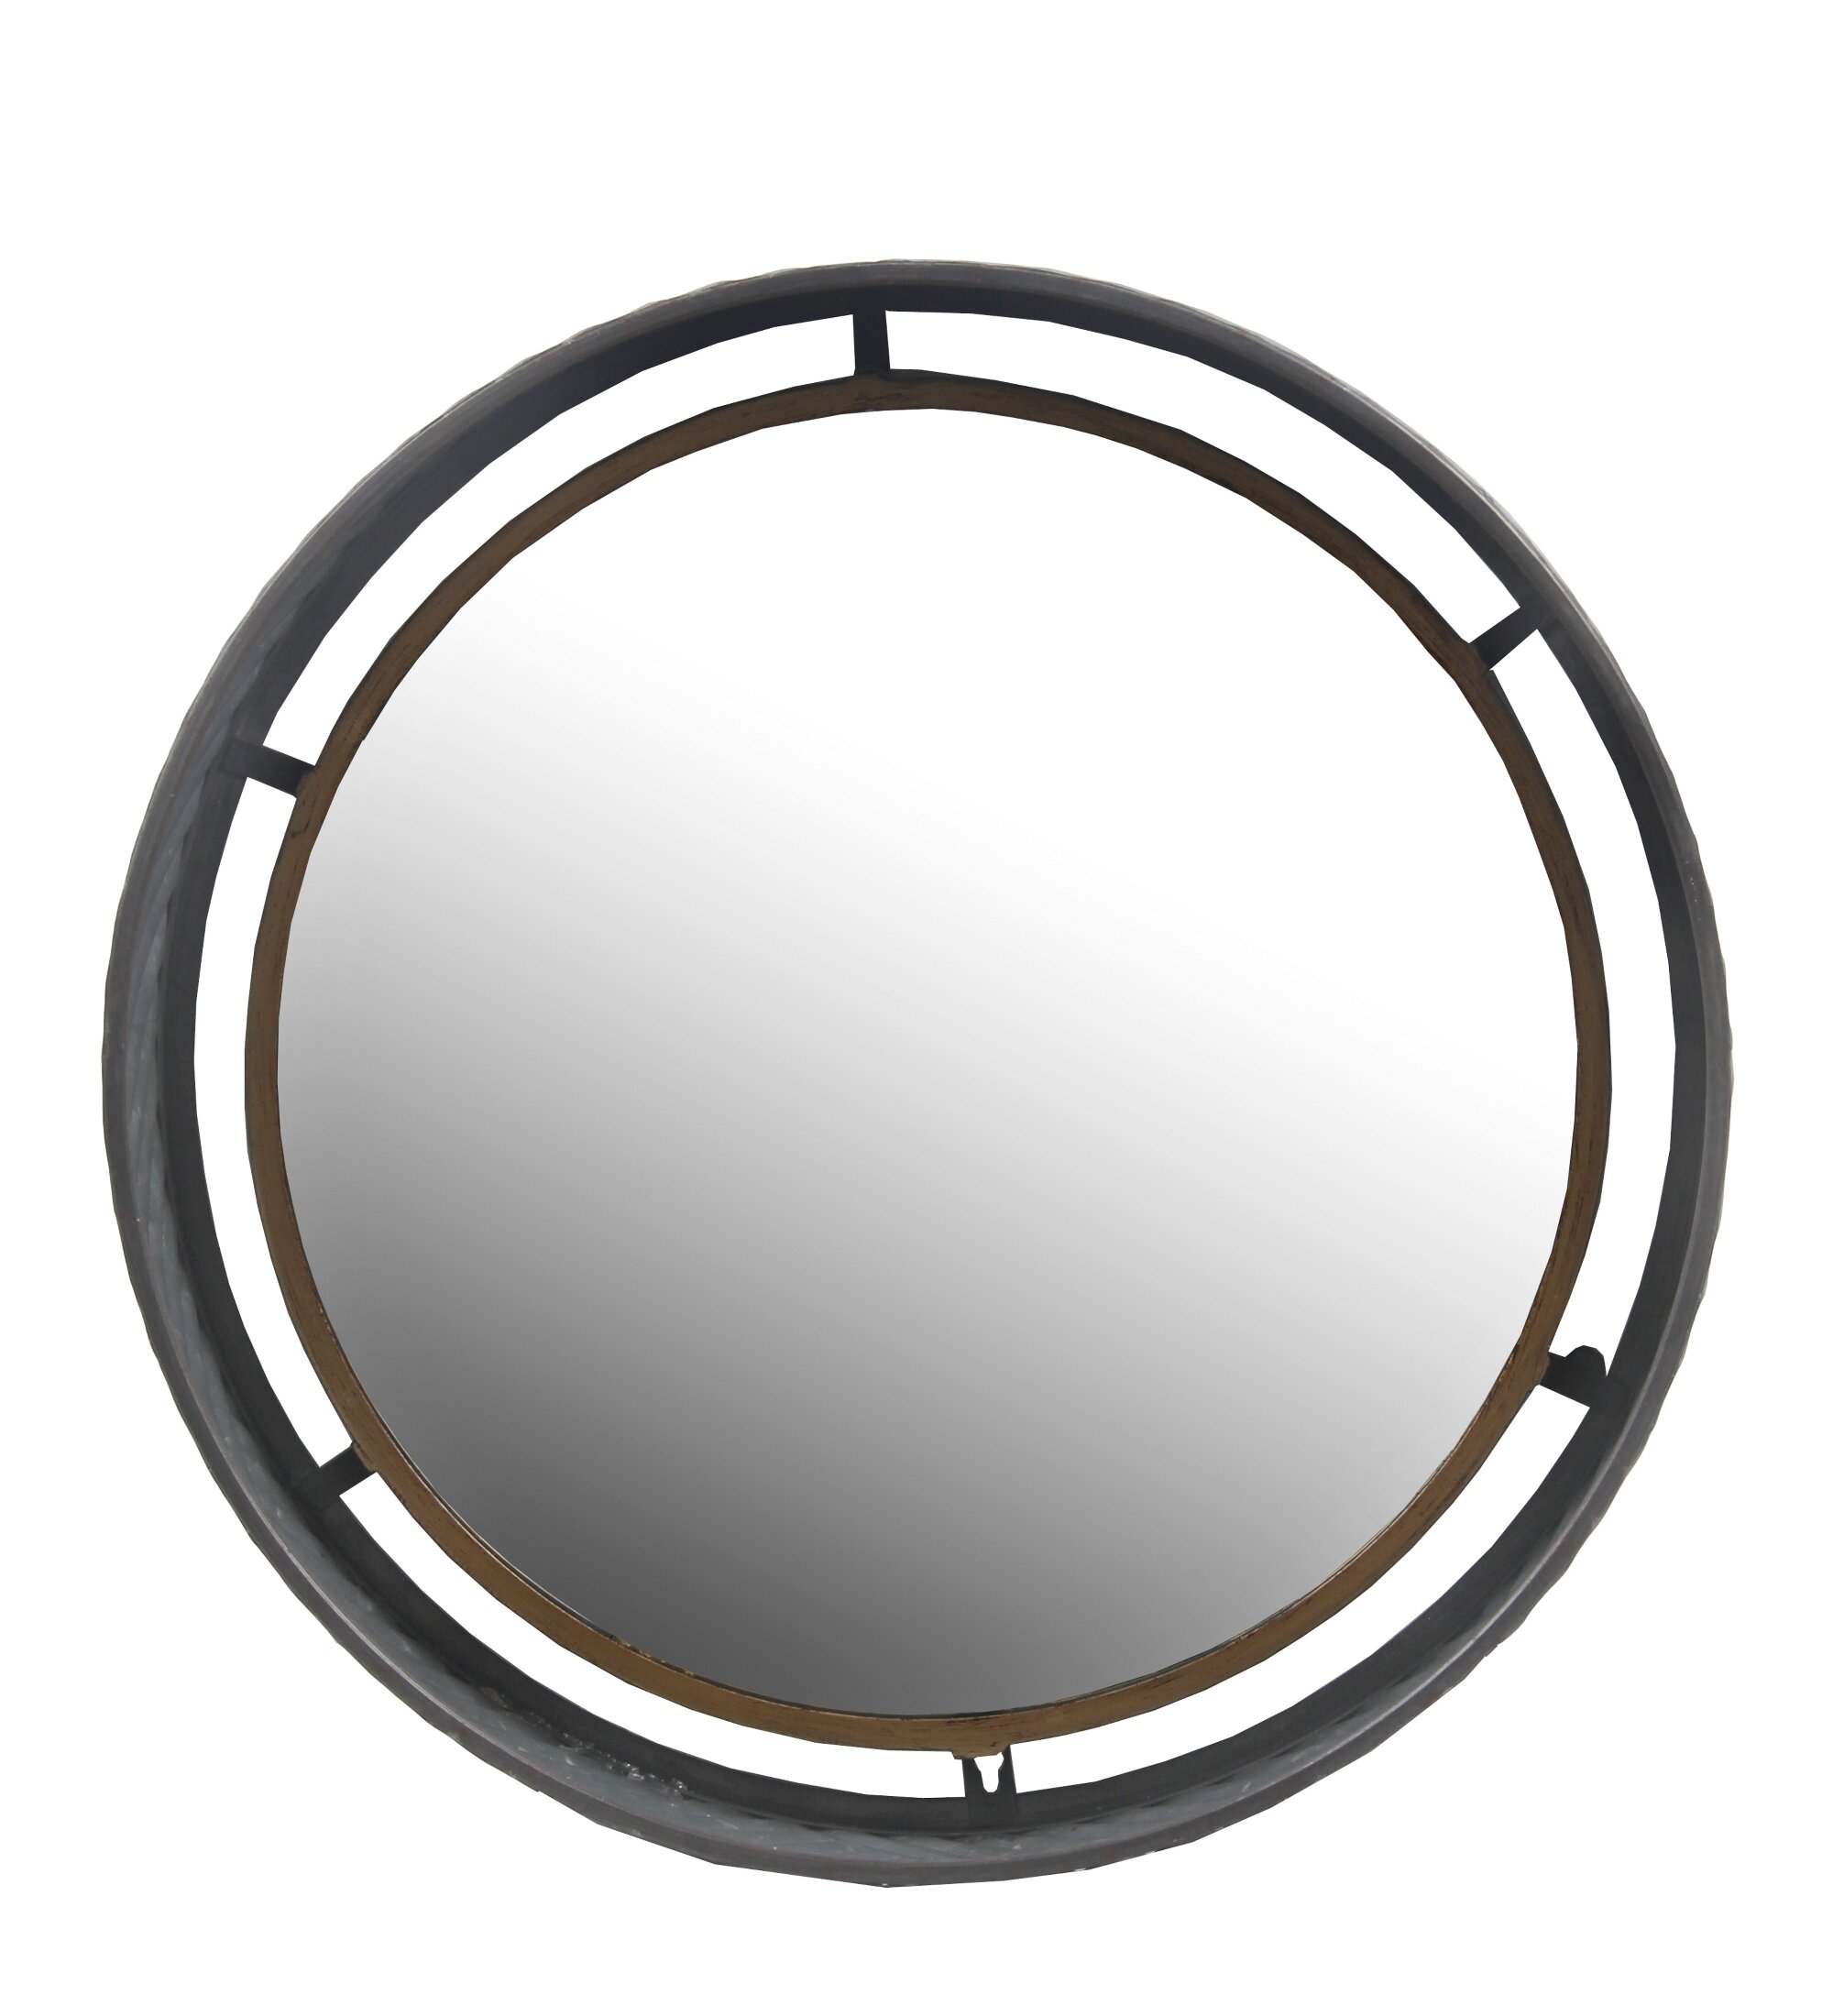 Williston Forge Chantell Metal Round Wall Accent Mirror Reviews Wayfair